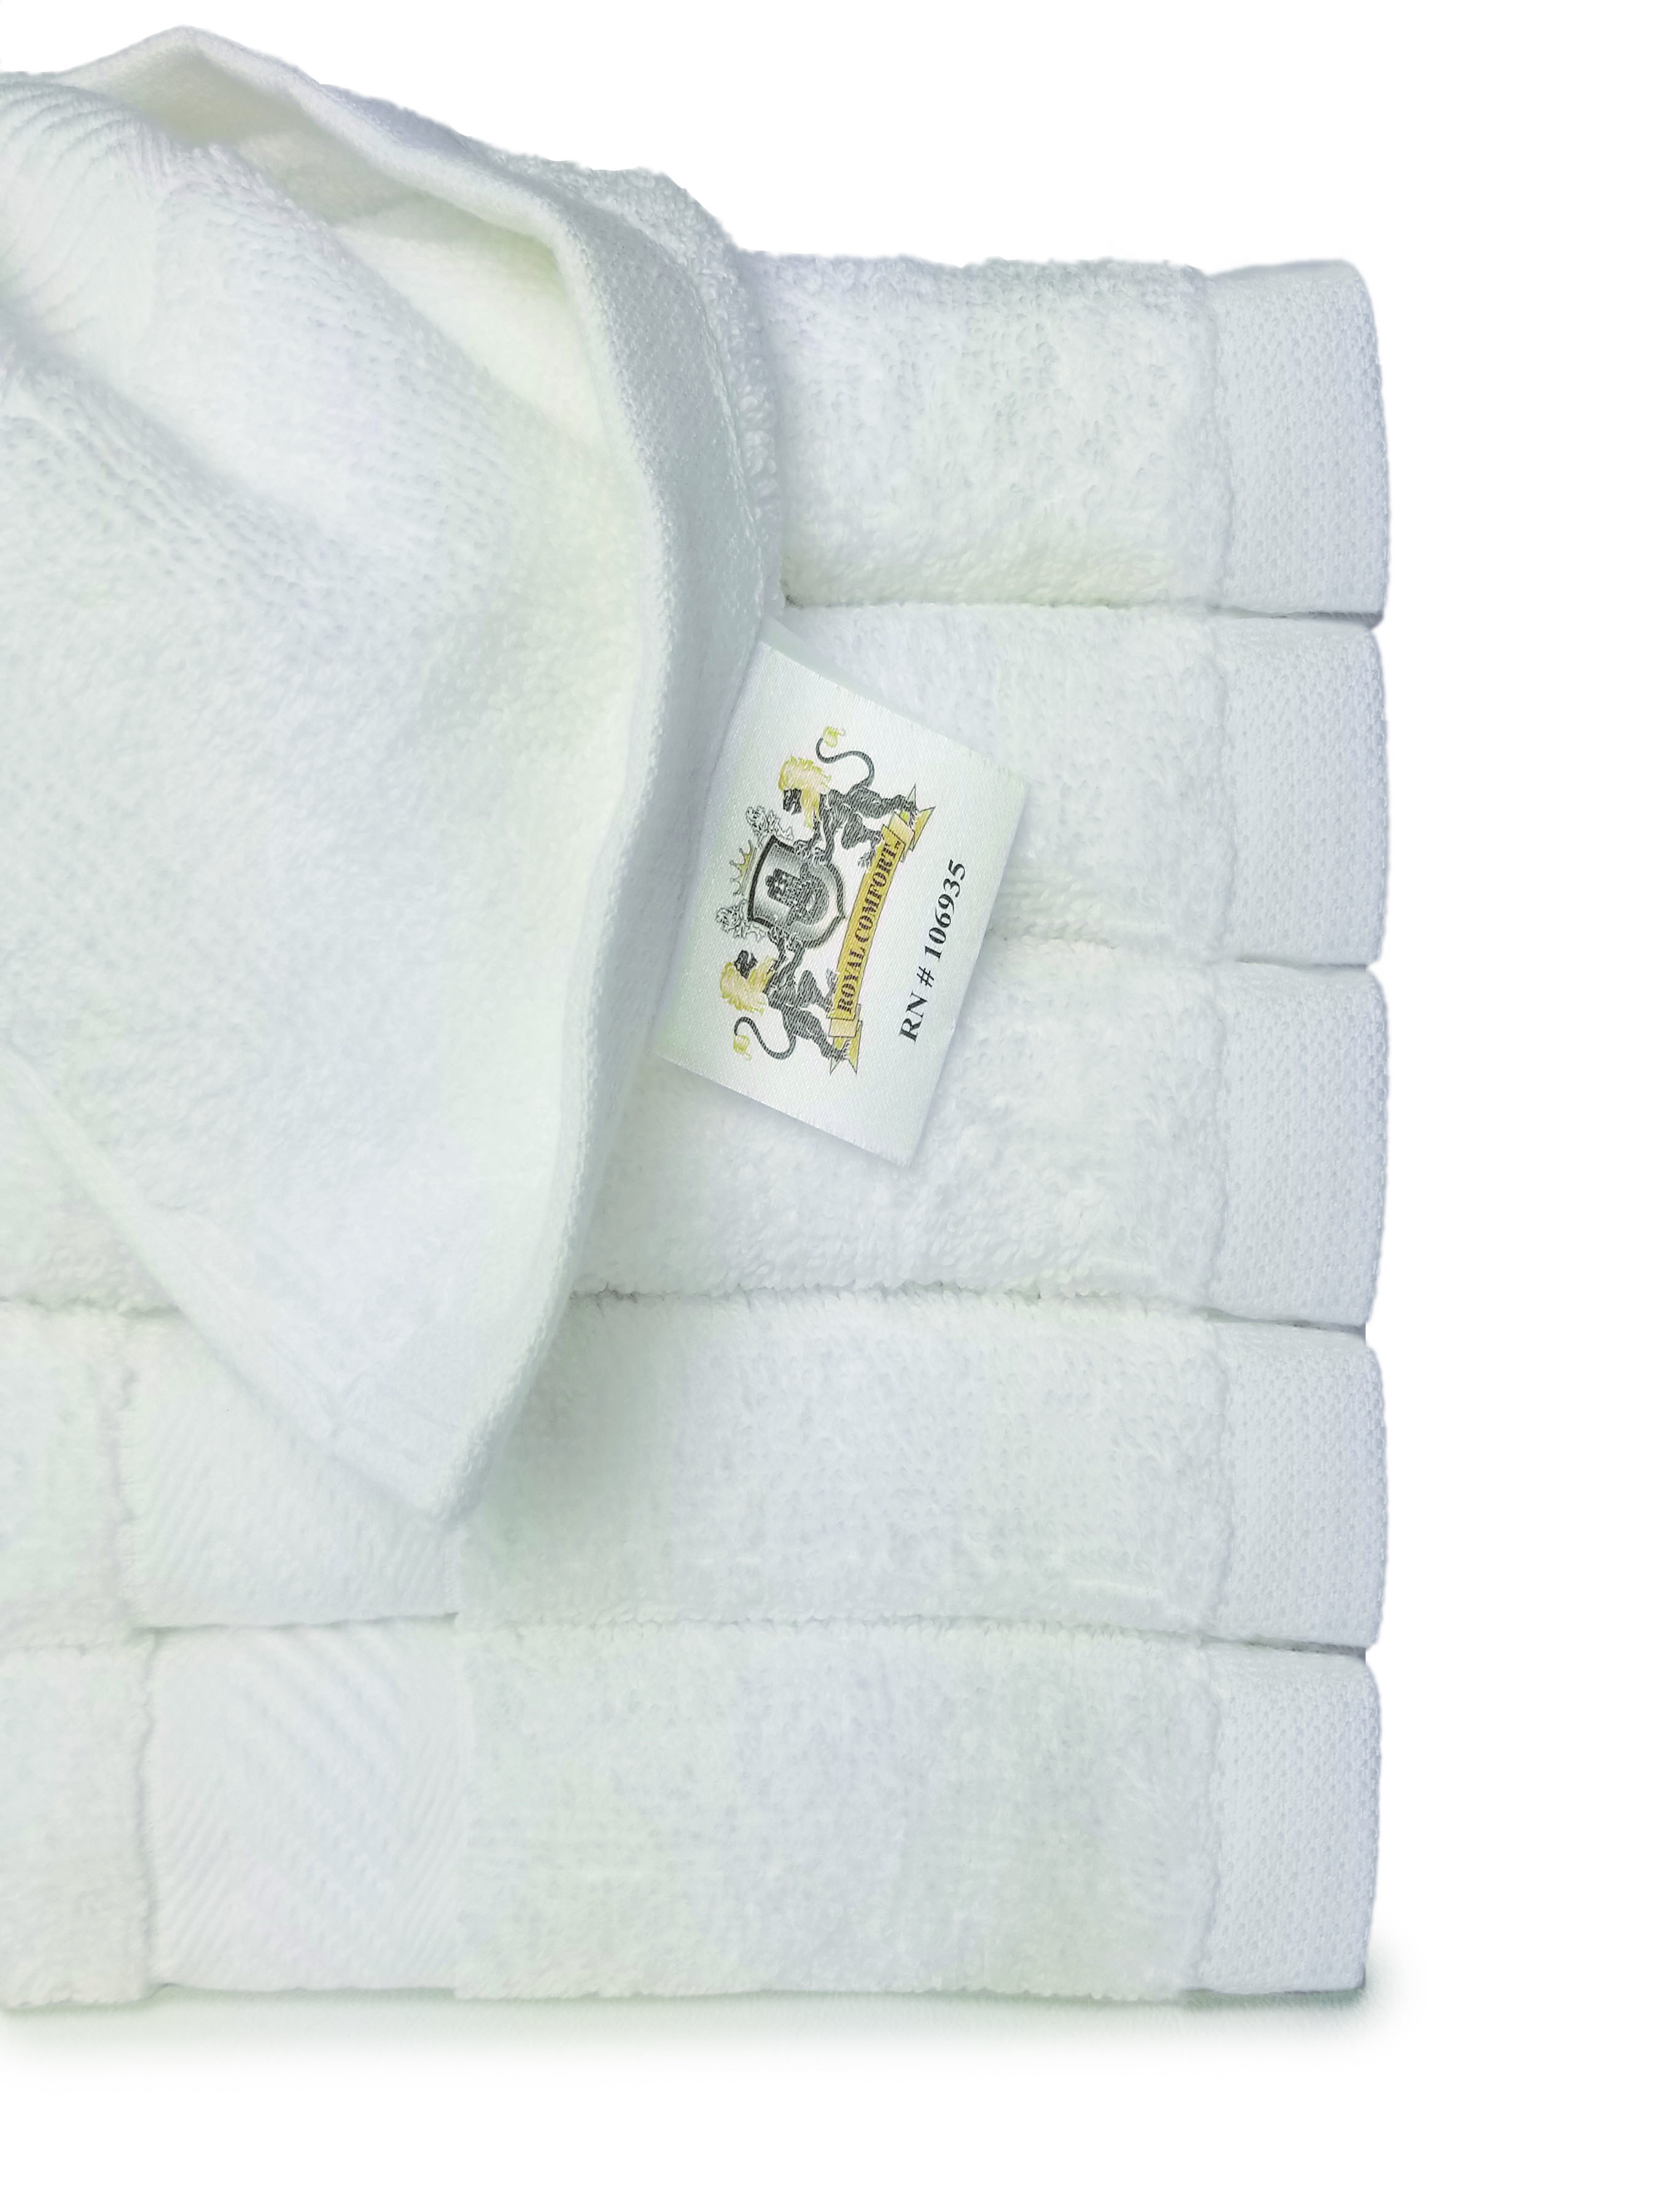 SHIPPING INCLUDED  24x48 Bath Towels by Royal Comfort 10.8 Lbs/Dz  Woven   RING SPUN COTTON